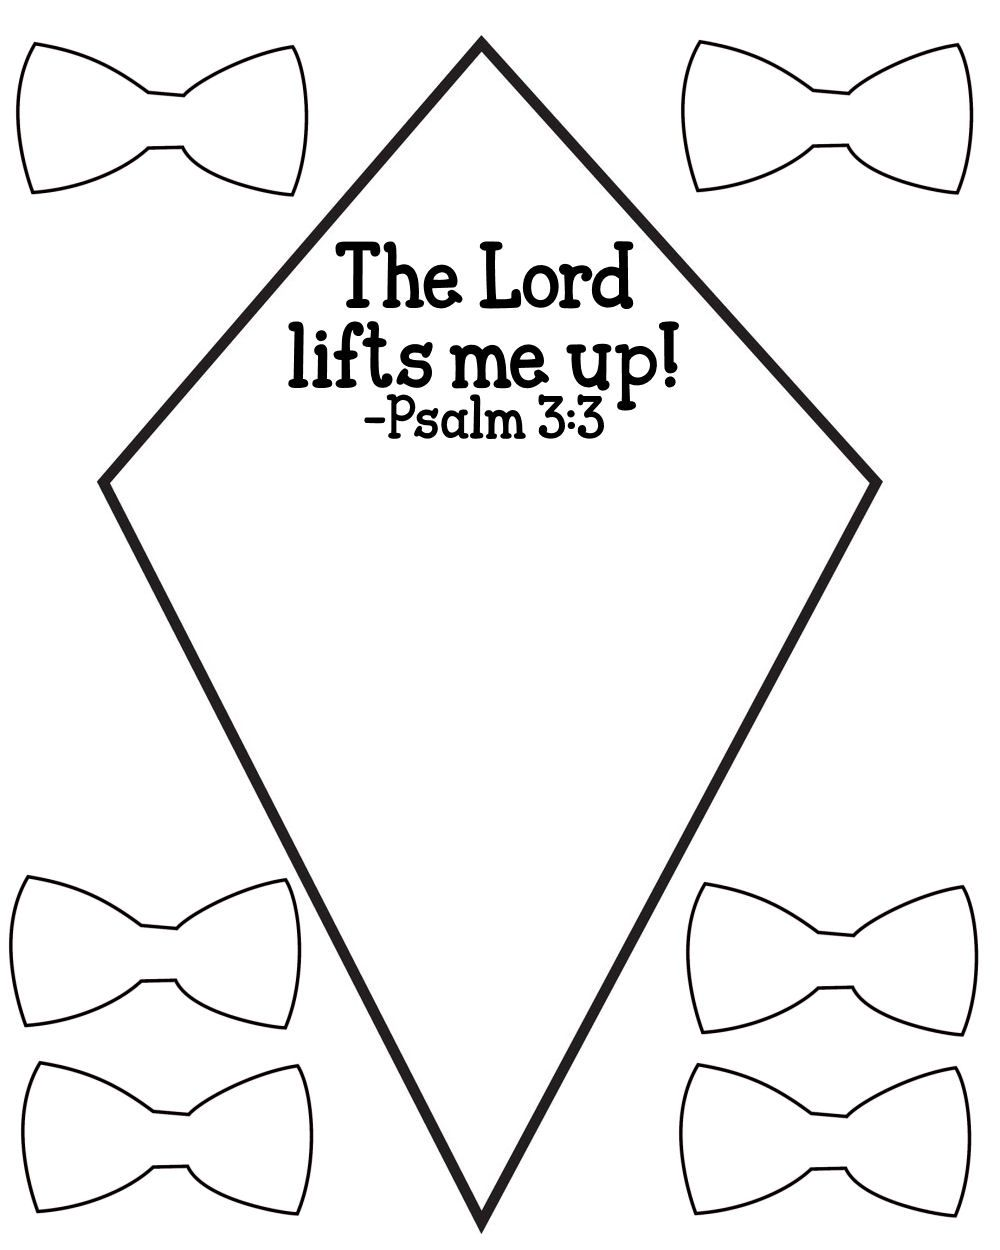 Sunday school crafts for preschool - Free Psalm 3 3 Kids Bible Lesson Activity Printables Mysunwillshine Com